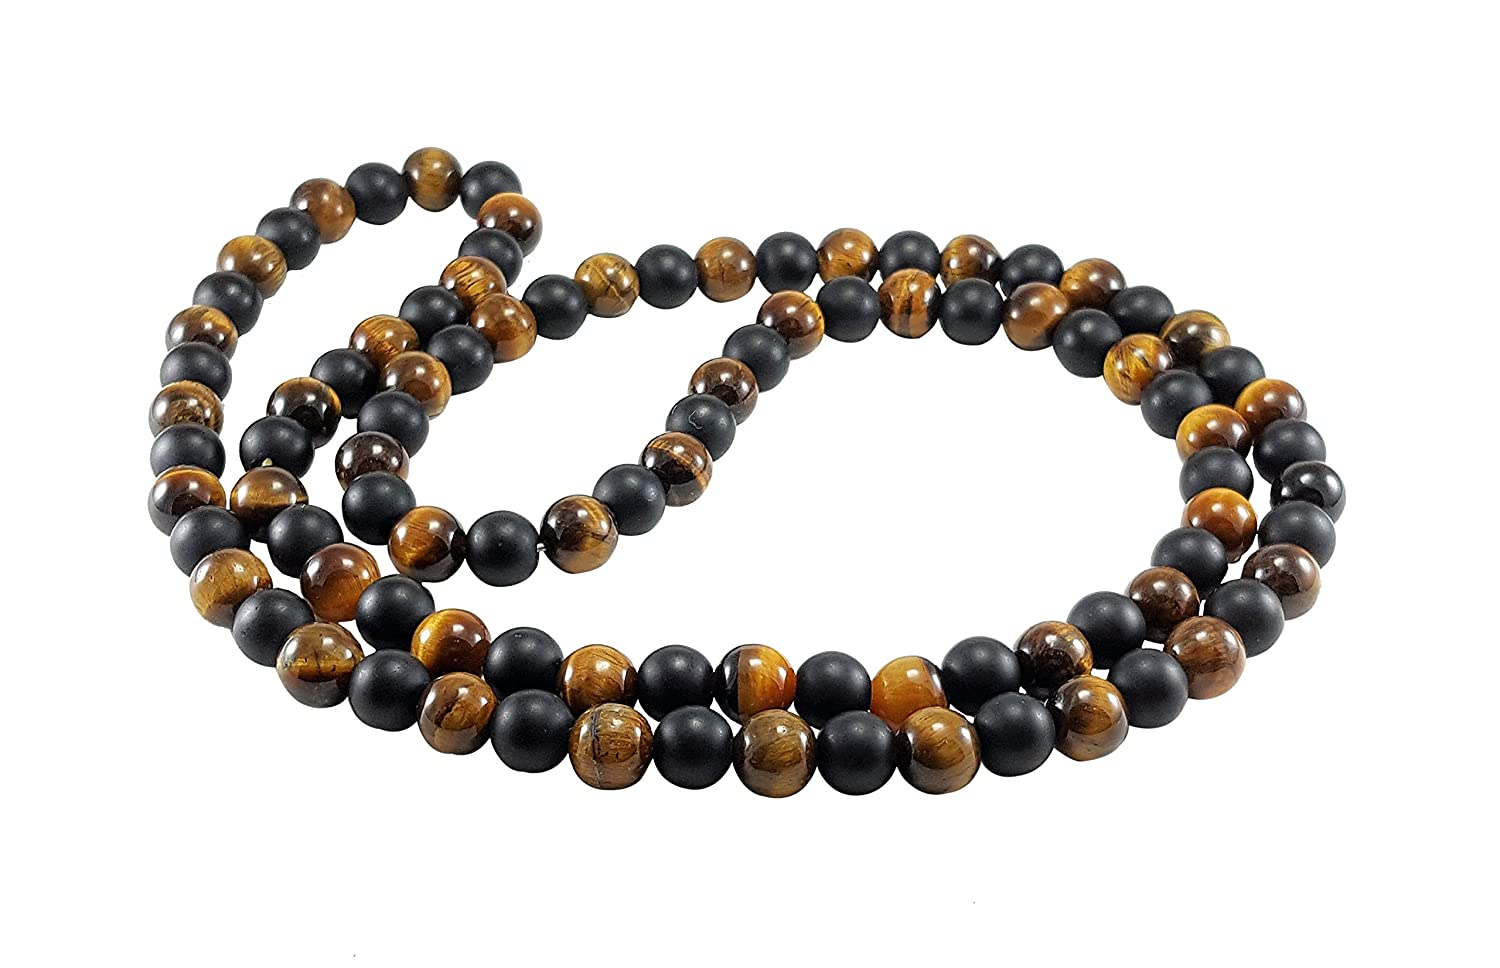 72f1c2660df49 Thommy Brand Men's Beaded Necklace Tiger's Eye Matte Black Onyx 8mm Natural  Gemstone Beaded Jewelry 30